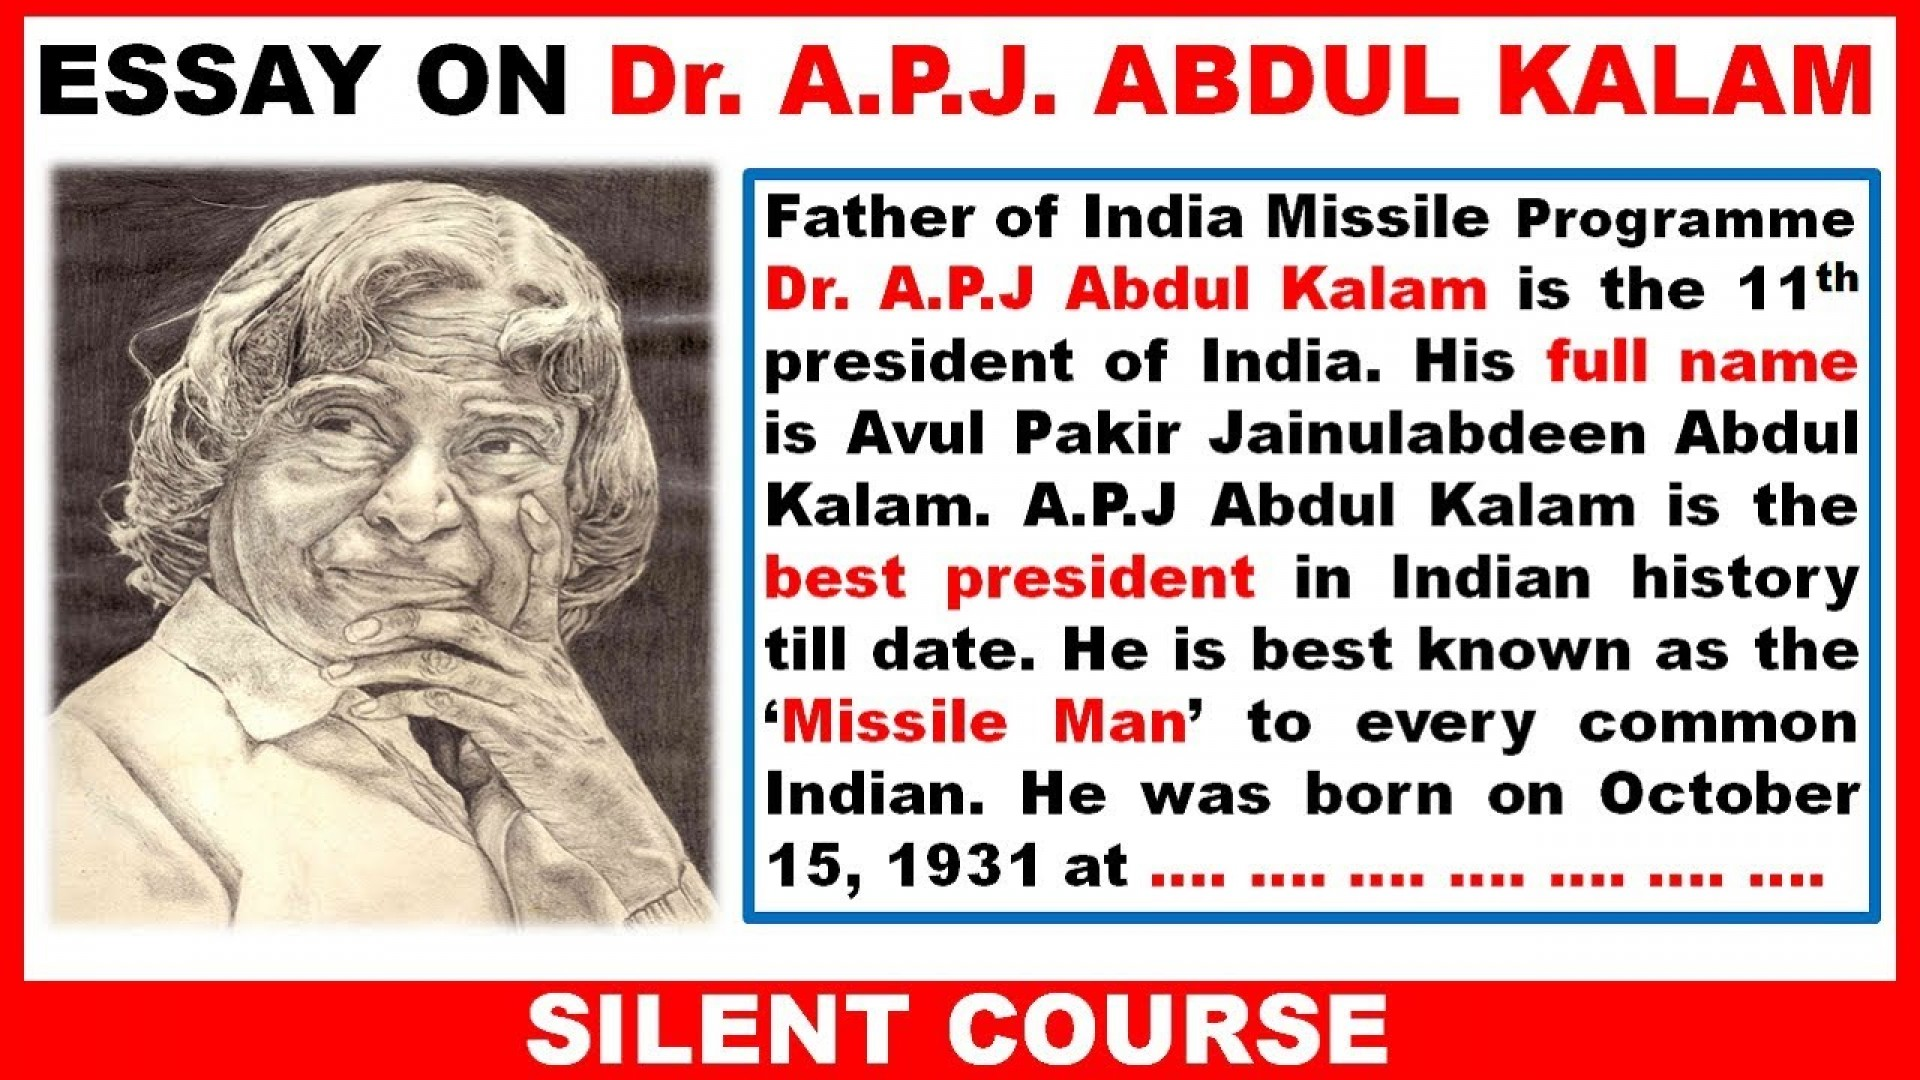 002 Abdul Kalam My Inspiration Essay Example Exceptional In English 400 Words Hindi 1920